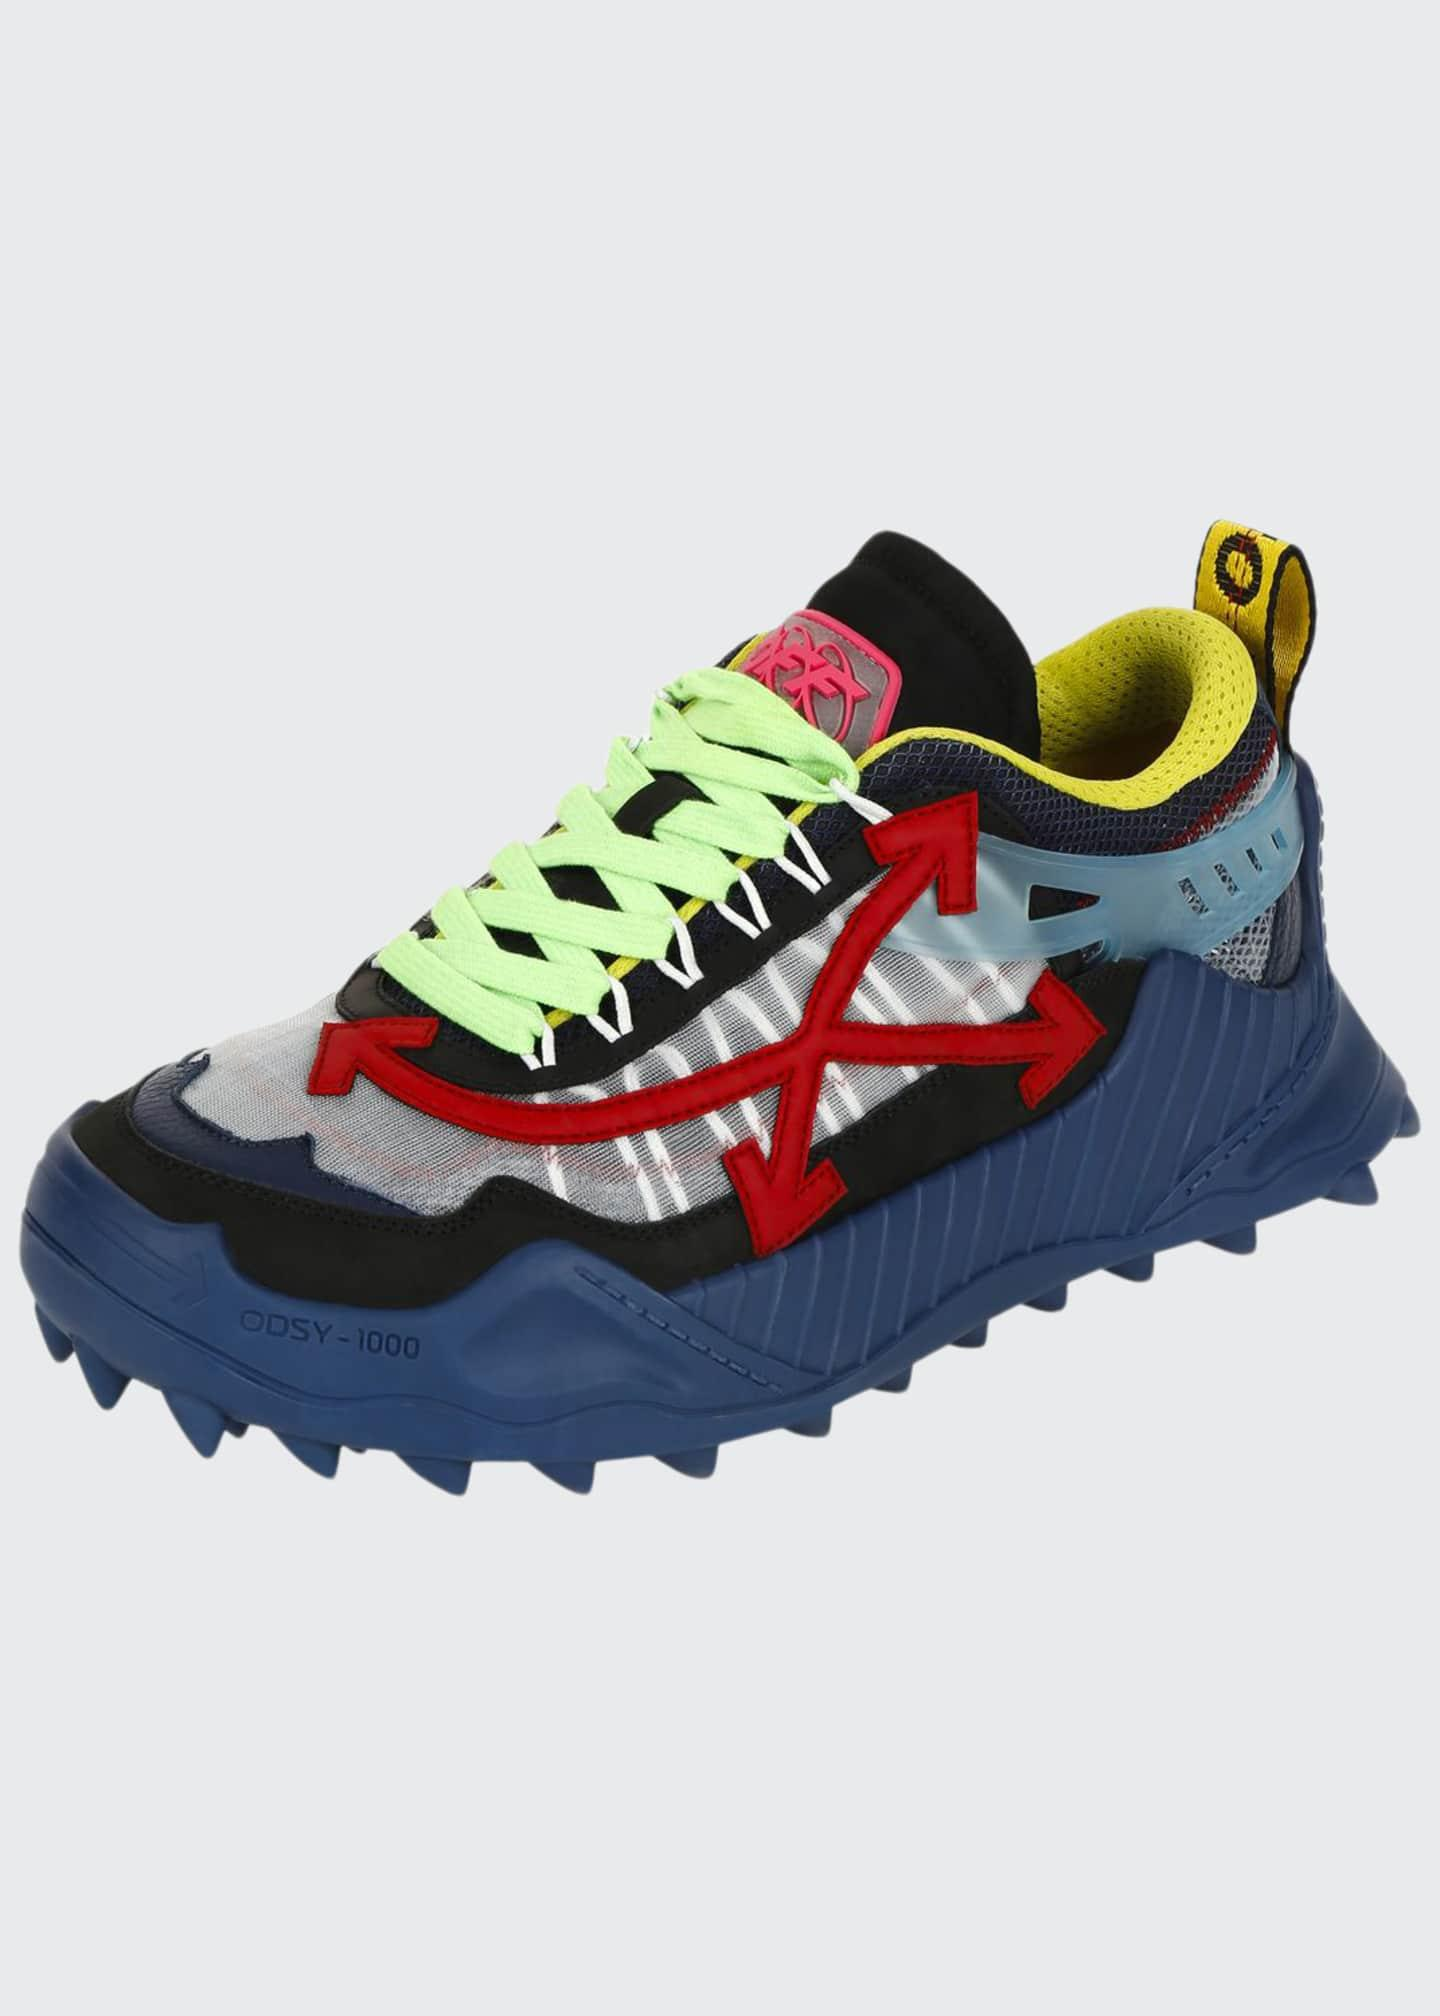 off white sneakers odsy